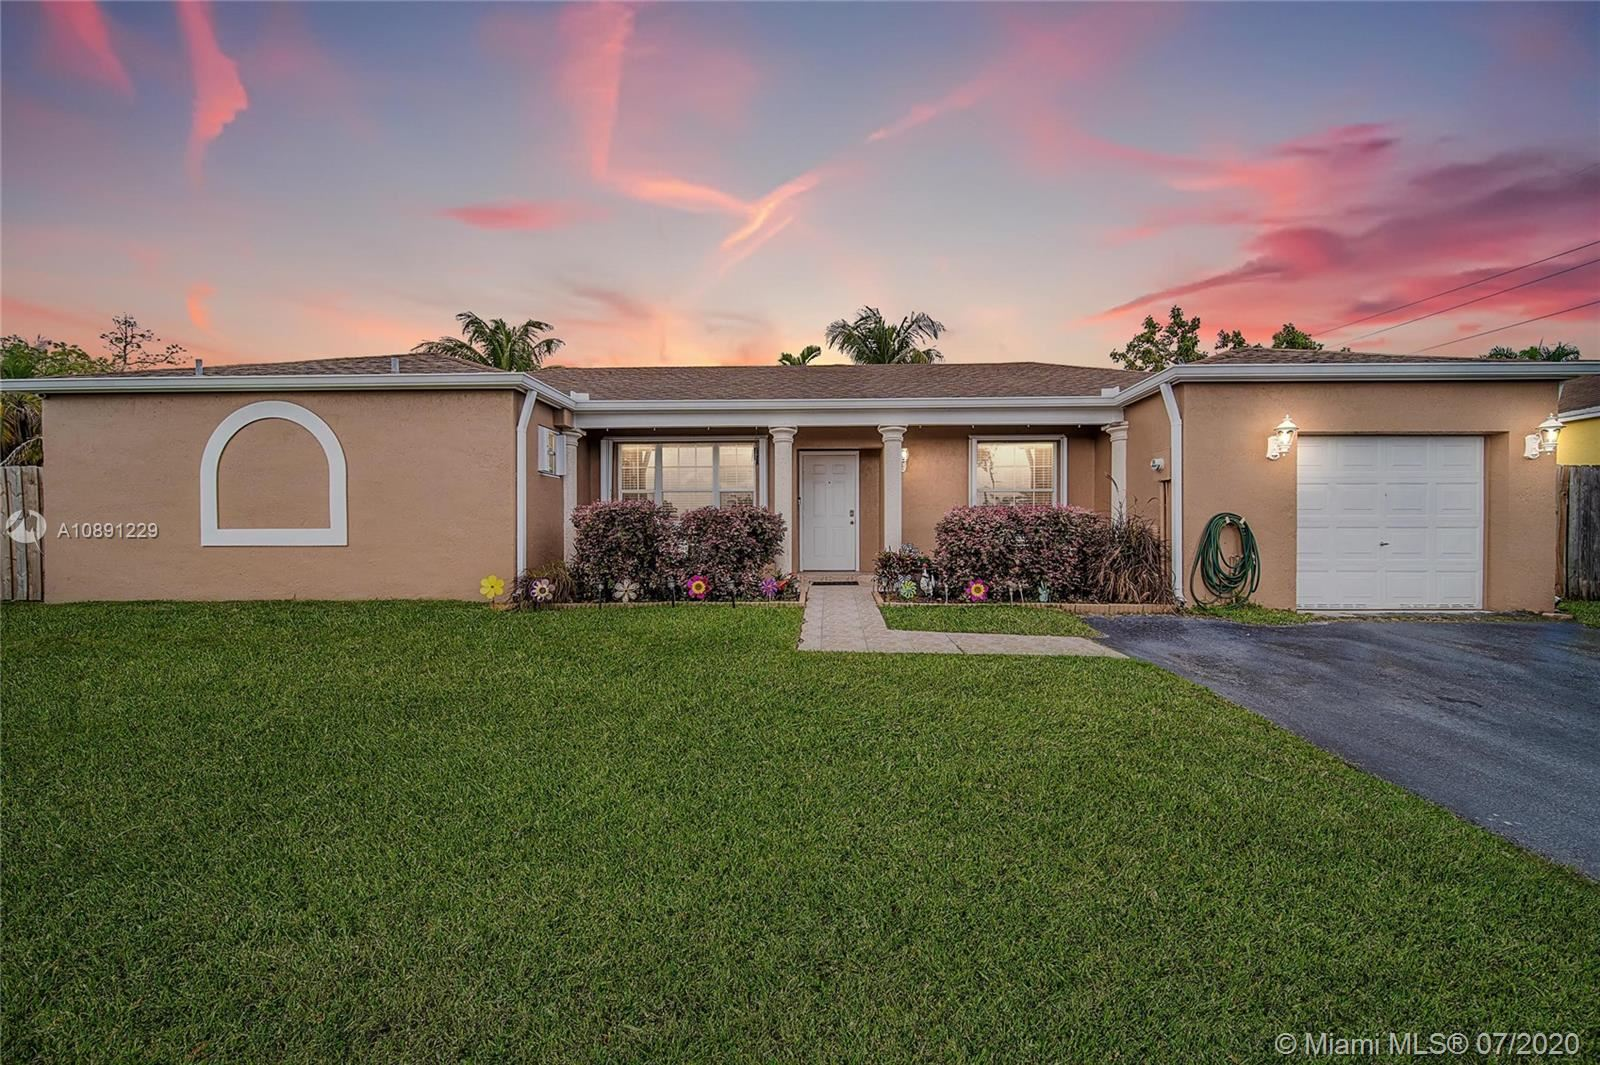 12563 SW 144th Ter, Miami, FL 33186 - #: A10891229